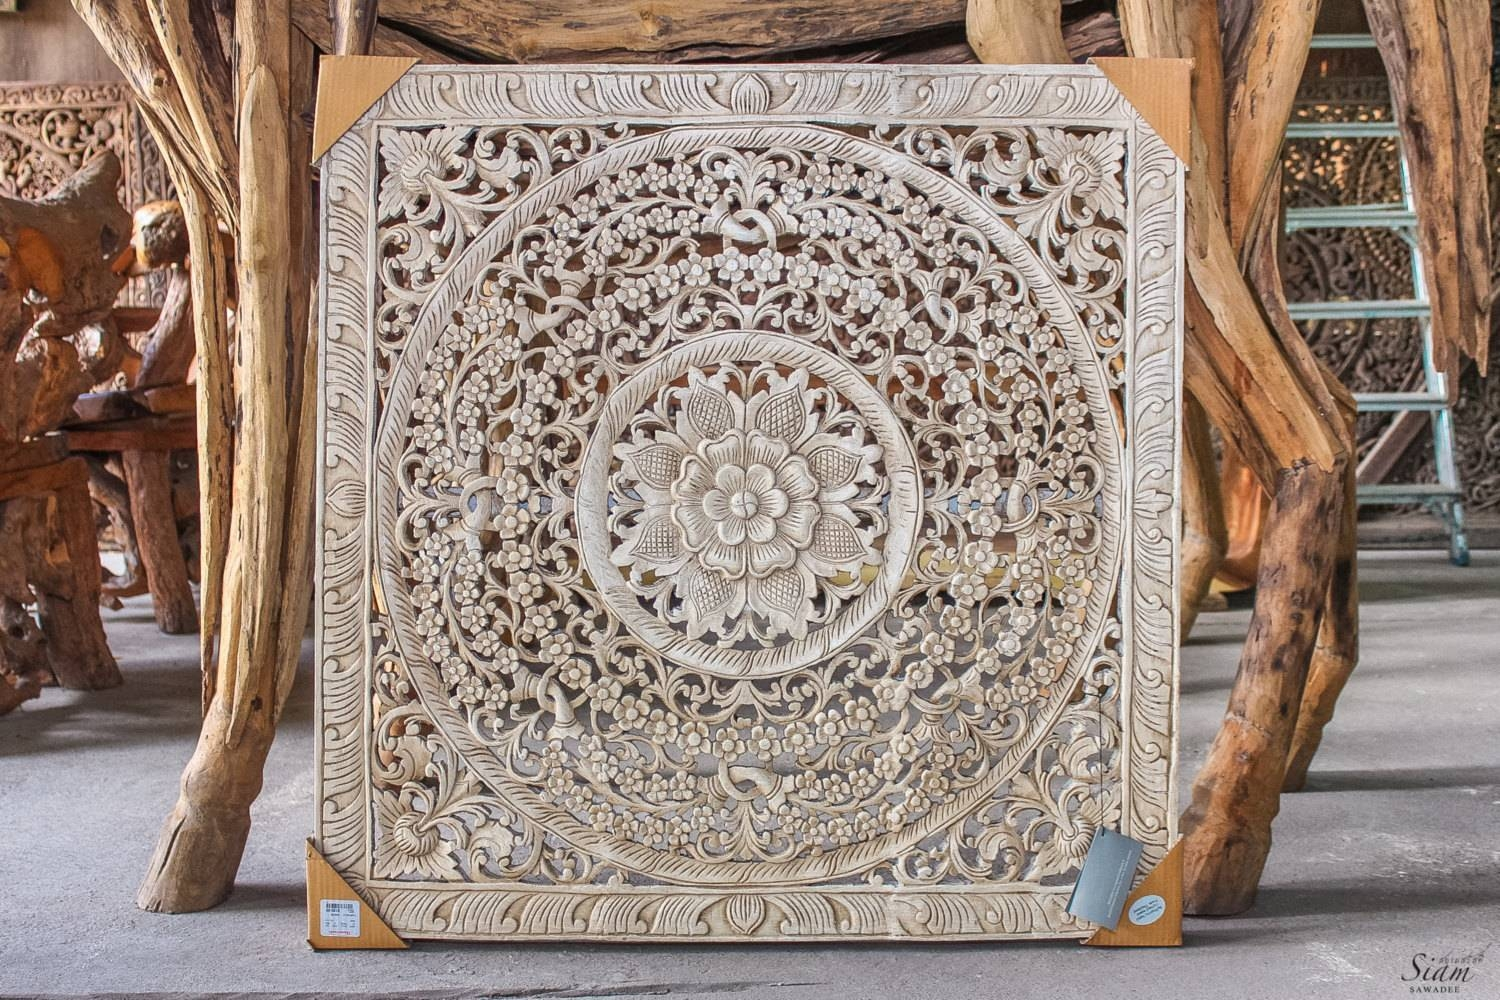 Wood Carved Wall Art | Himalayantrexplorers Inside Most Popular White Wooden Wall Art (View 19 of 20)